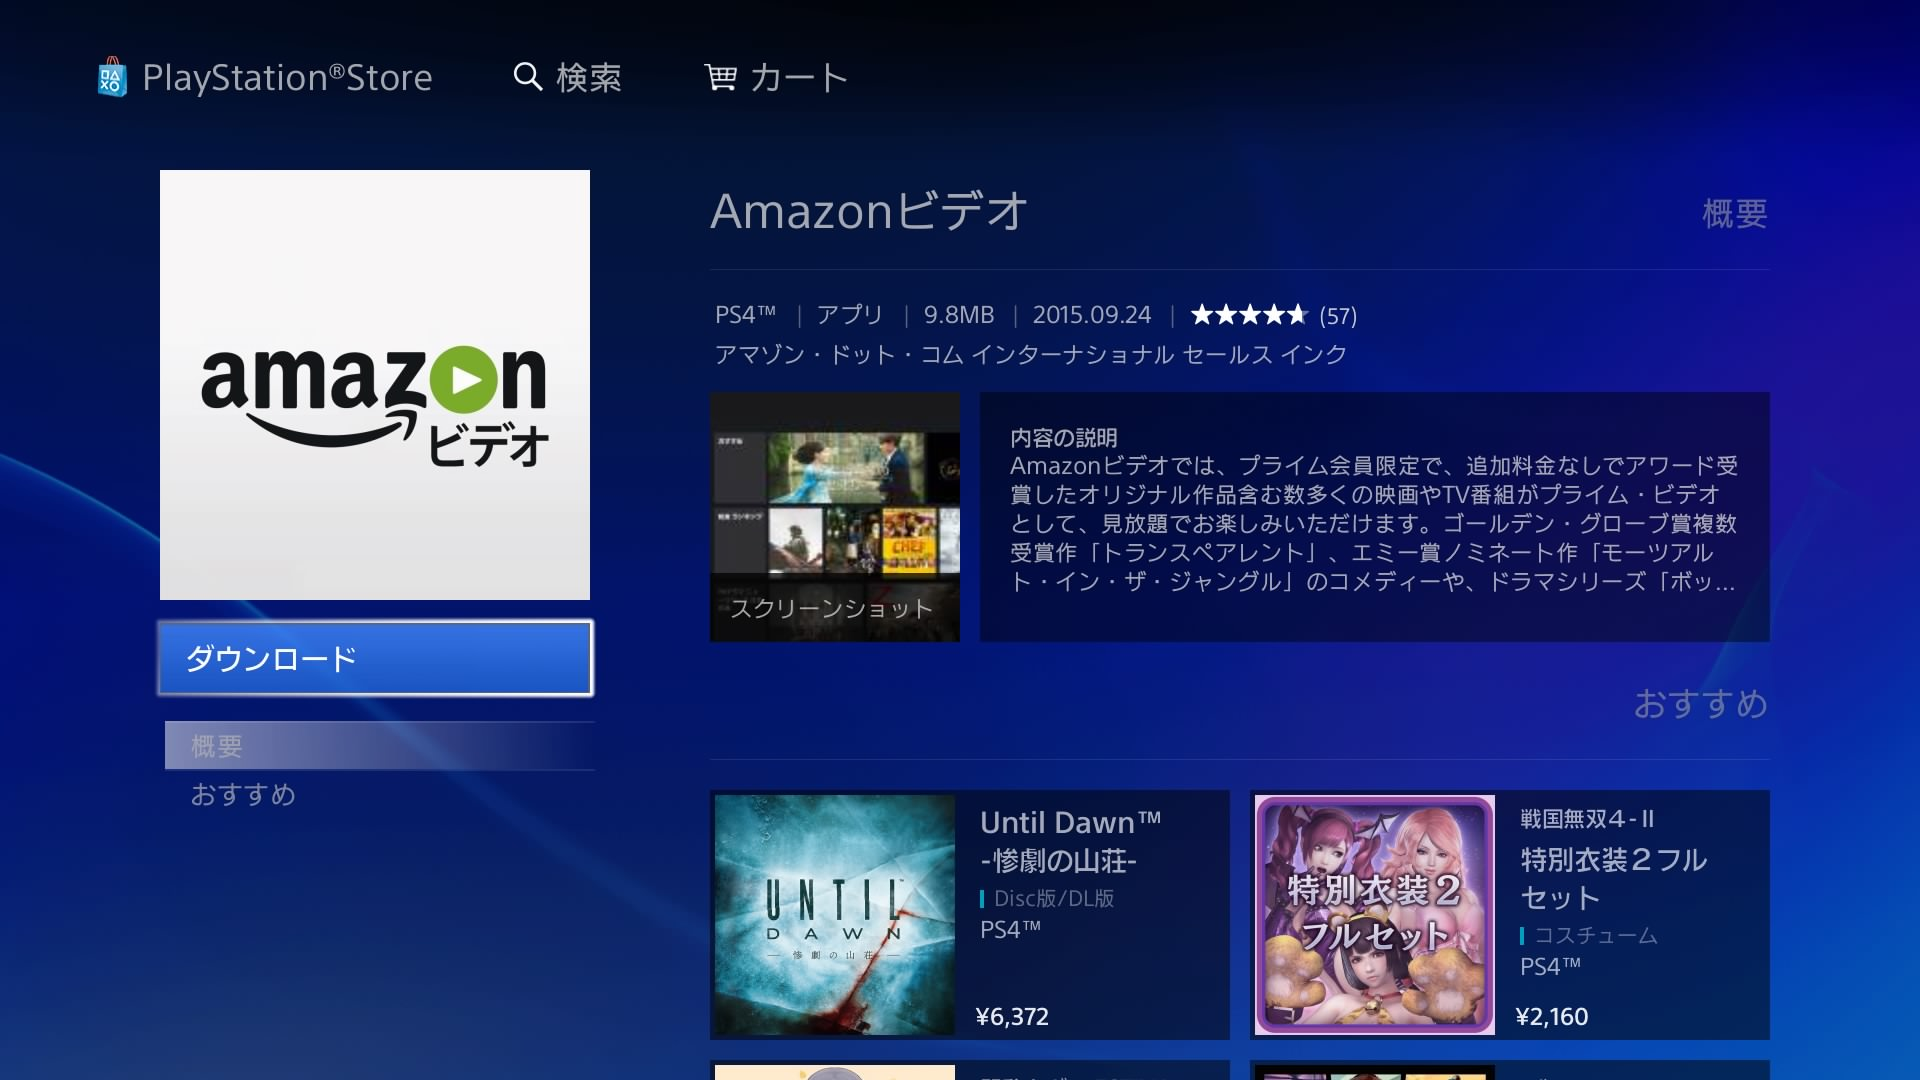 How to watch amazon video in playstation 4 3